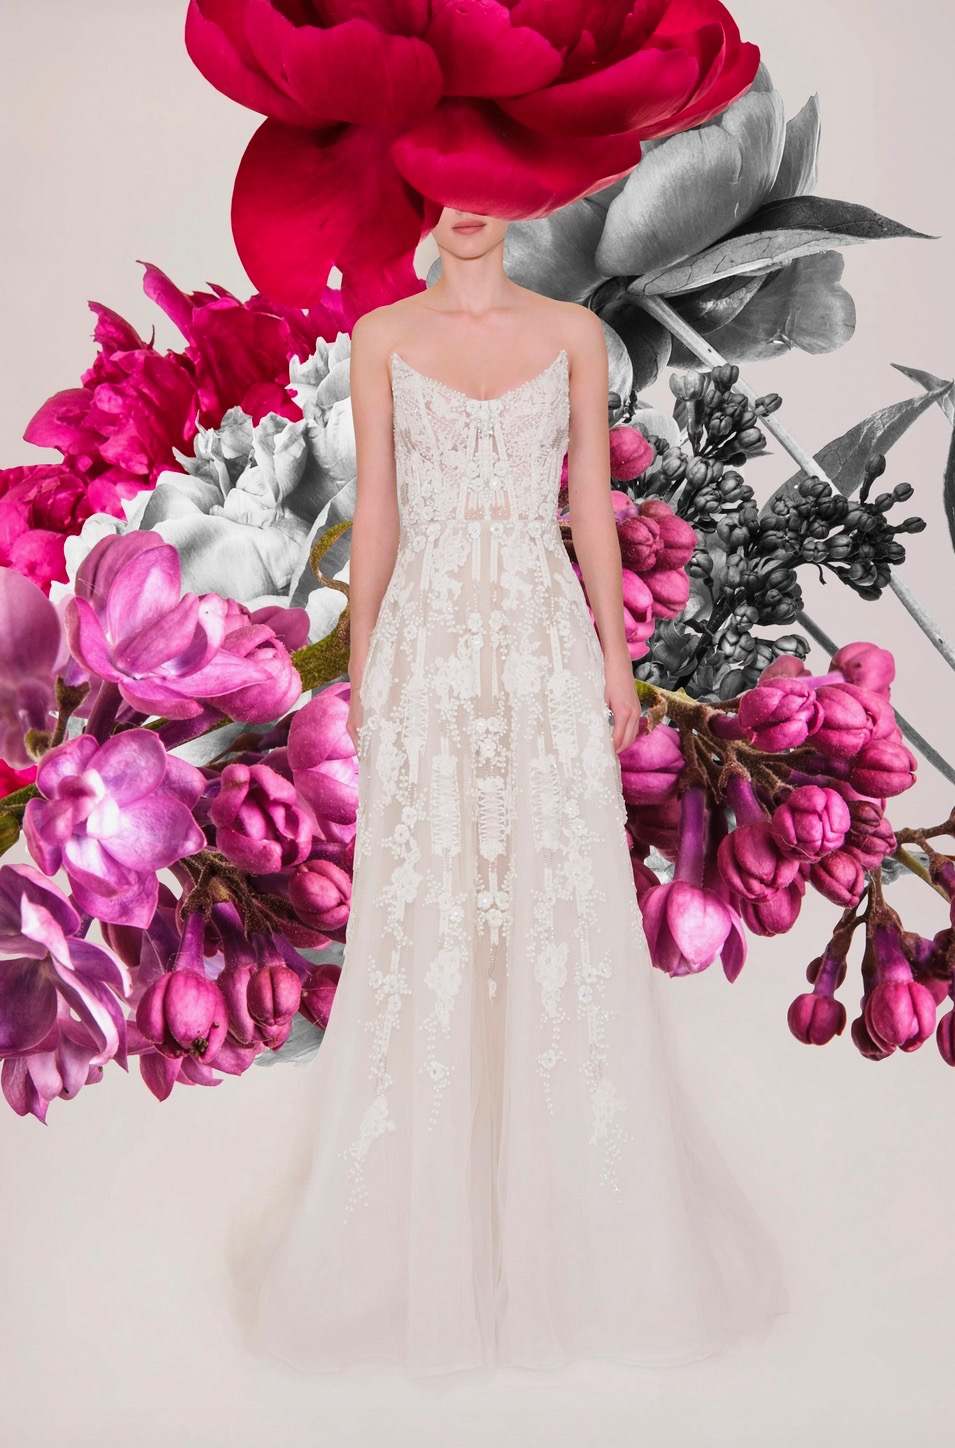 Wedding Gowns From The Bridal Spring 2021 Collections Thefashionspot